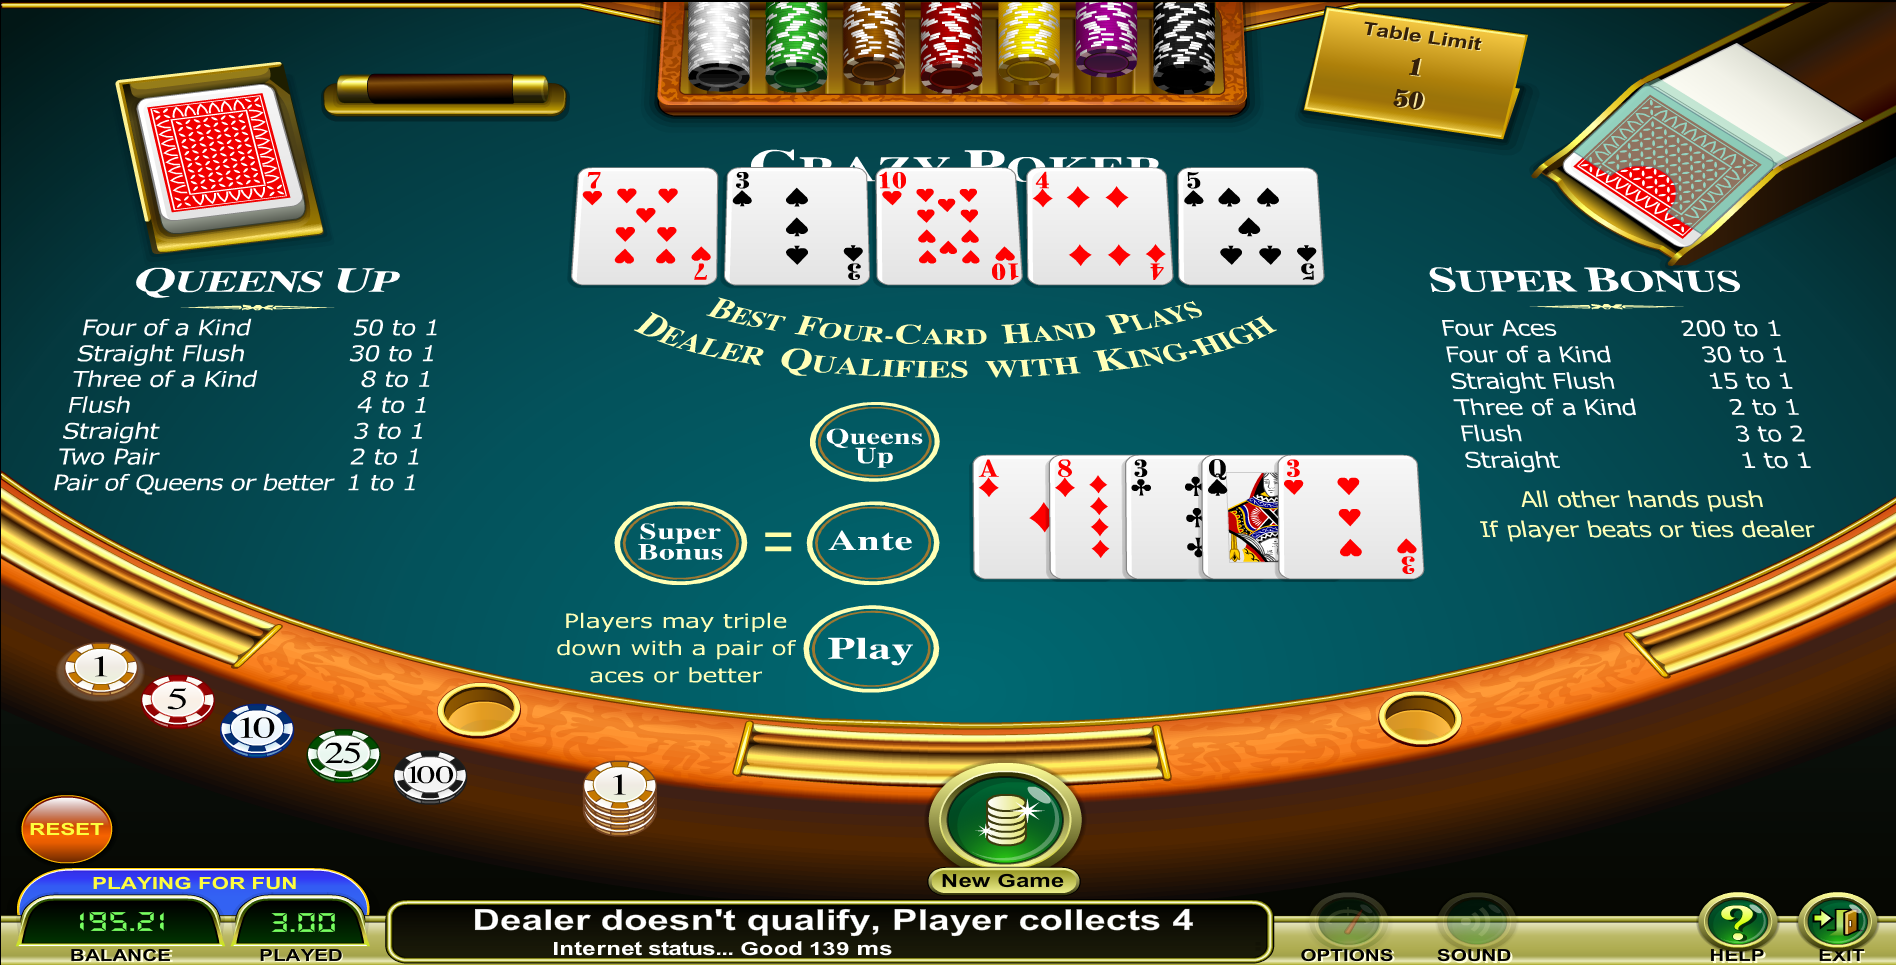 Crazy 4 poker betting strategy media card reader slot